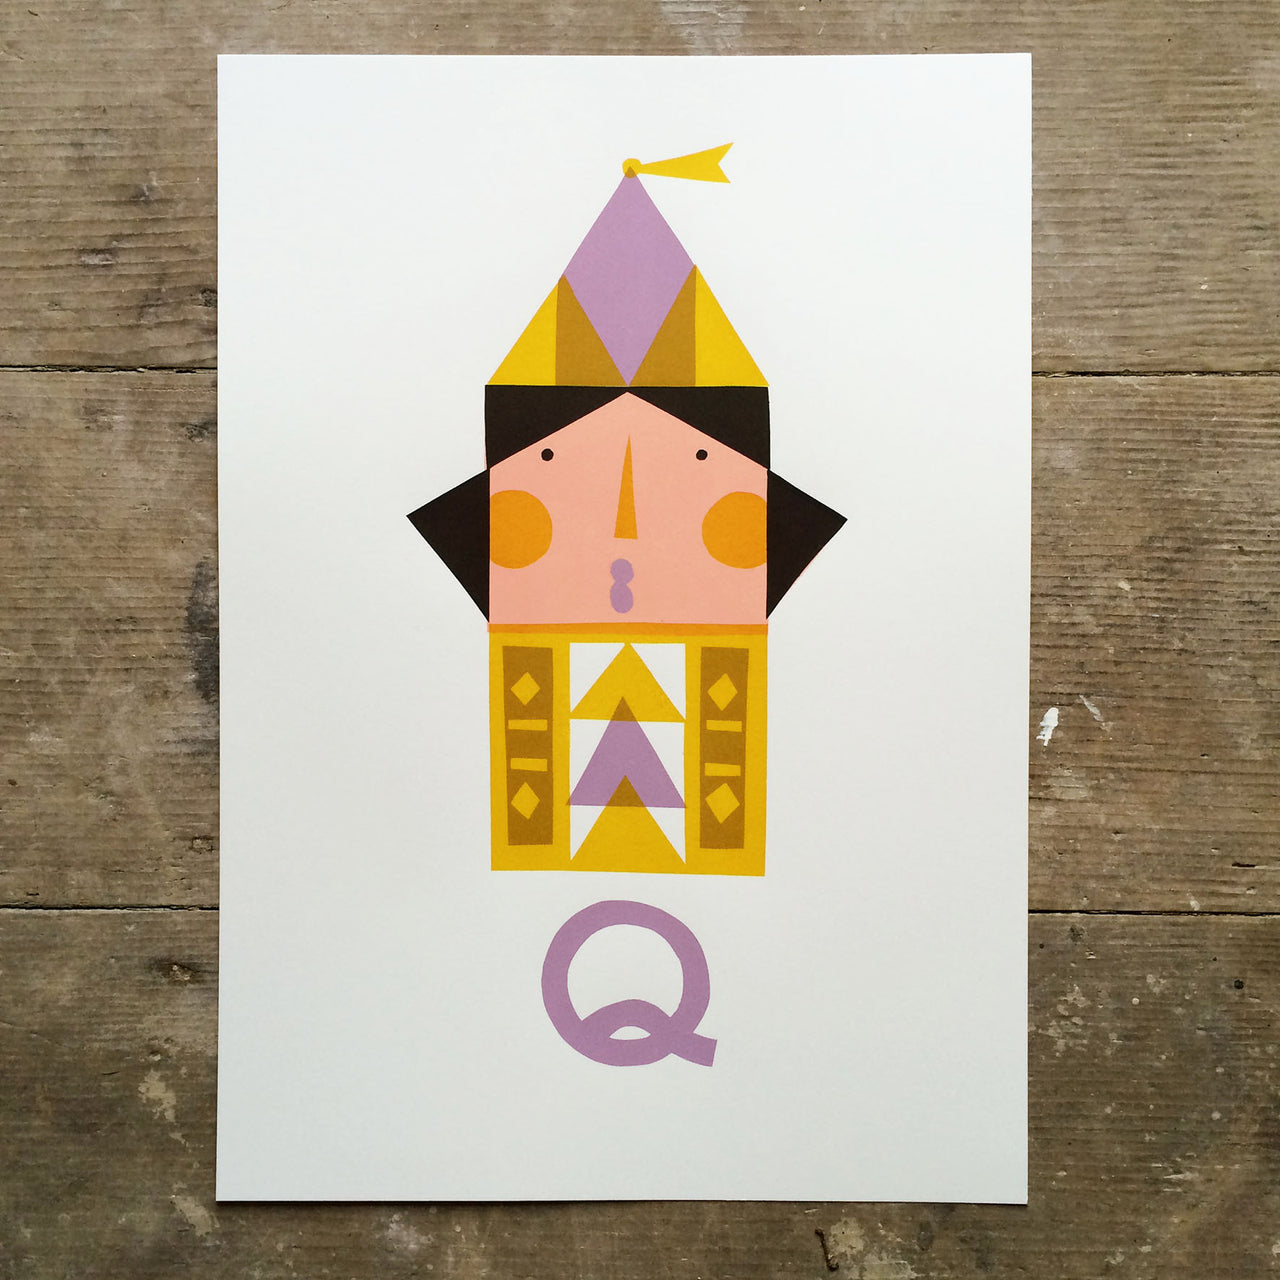 Q for Queen print by Frost & Kin